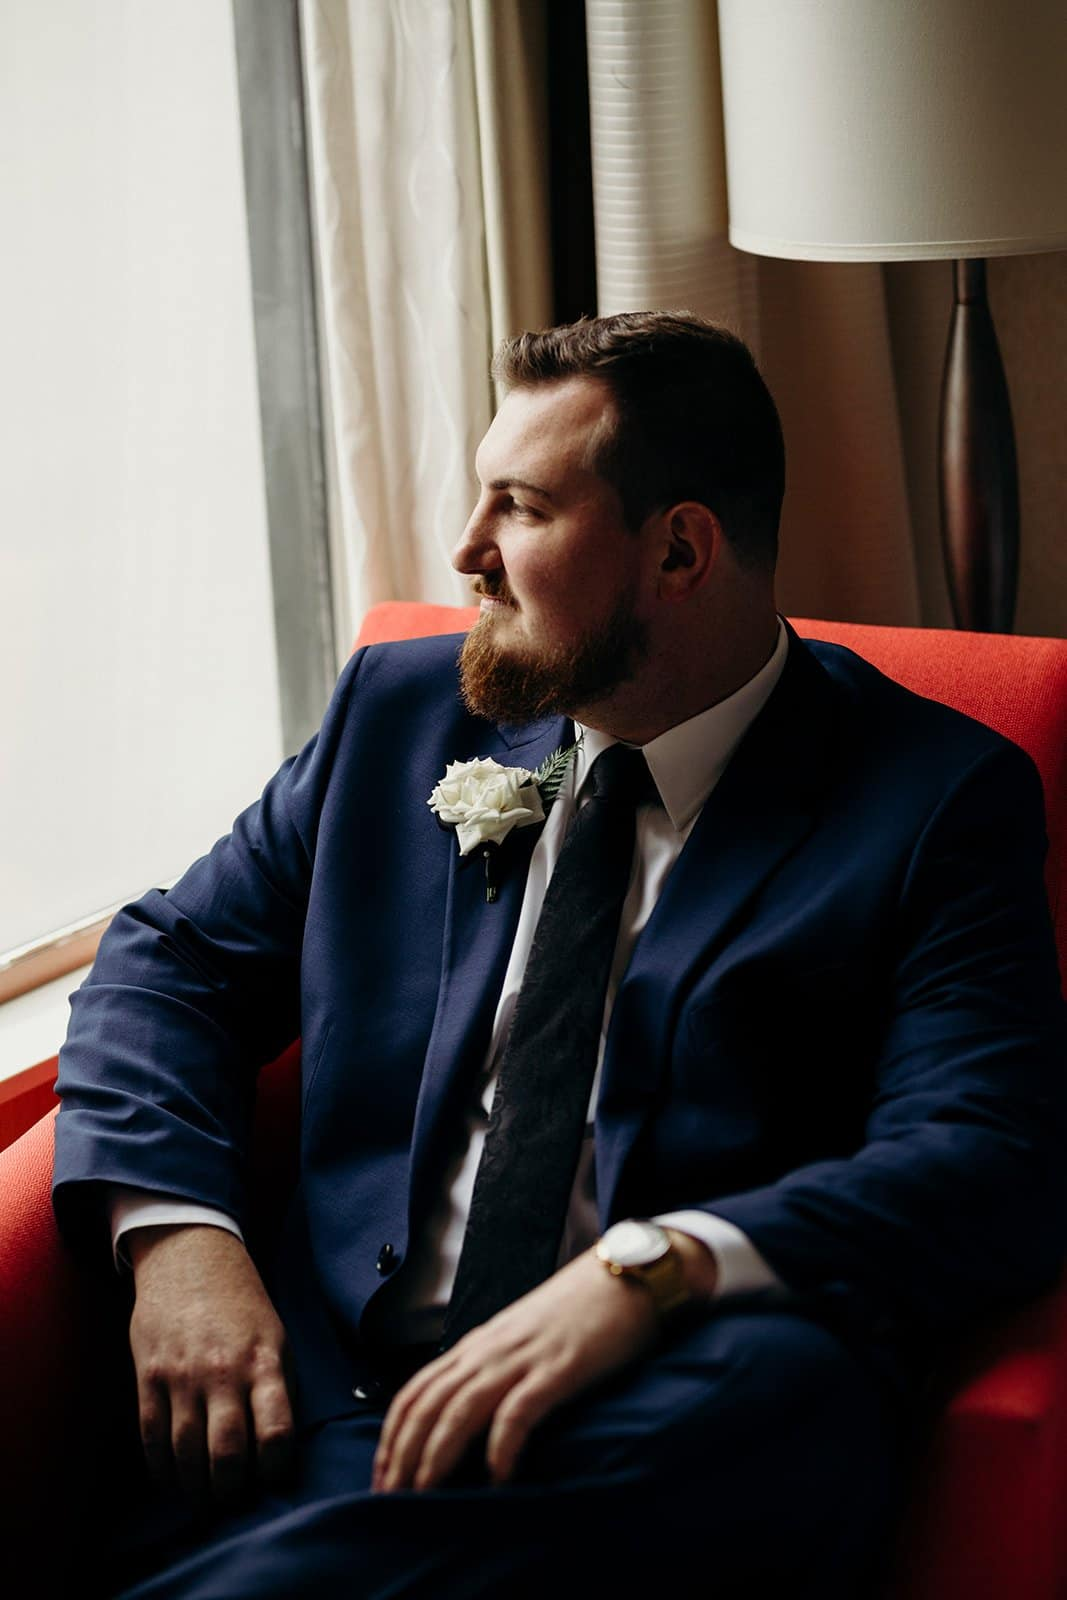 groom poses in red chair by window